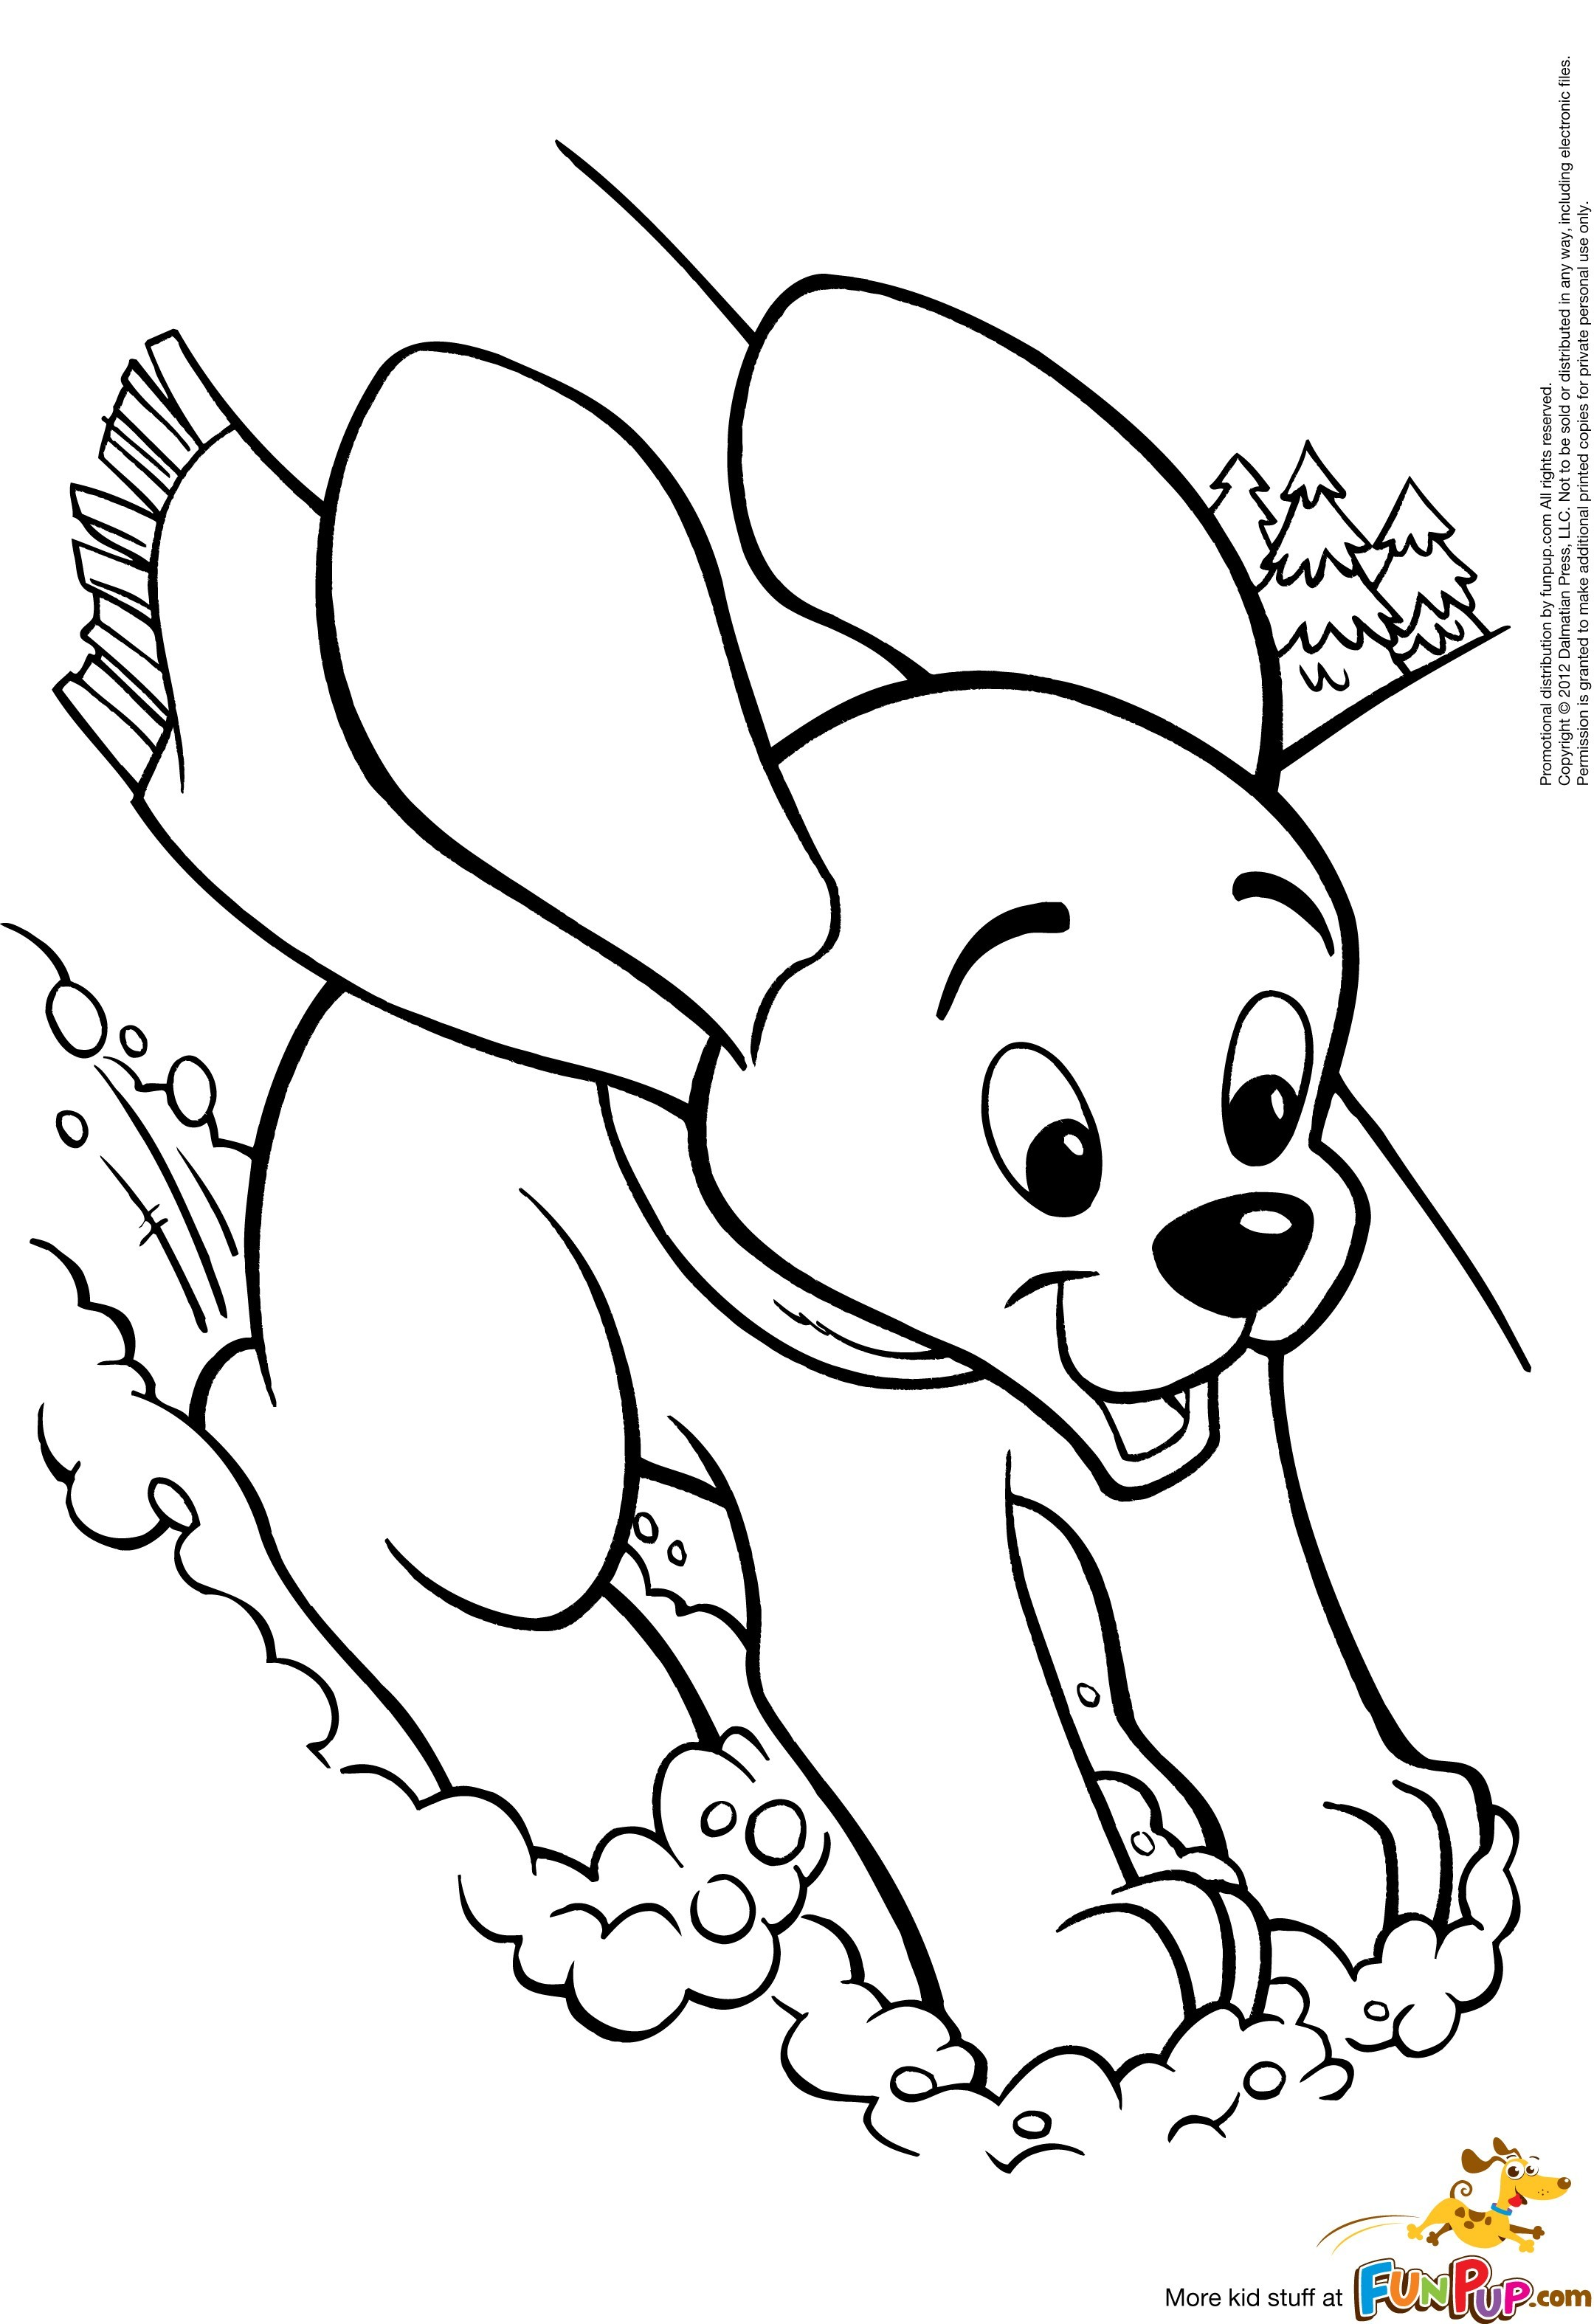 Cute Dog Coloring Pages For Kids At Getcolorings